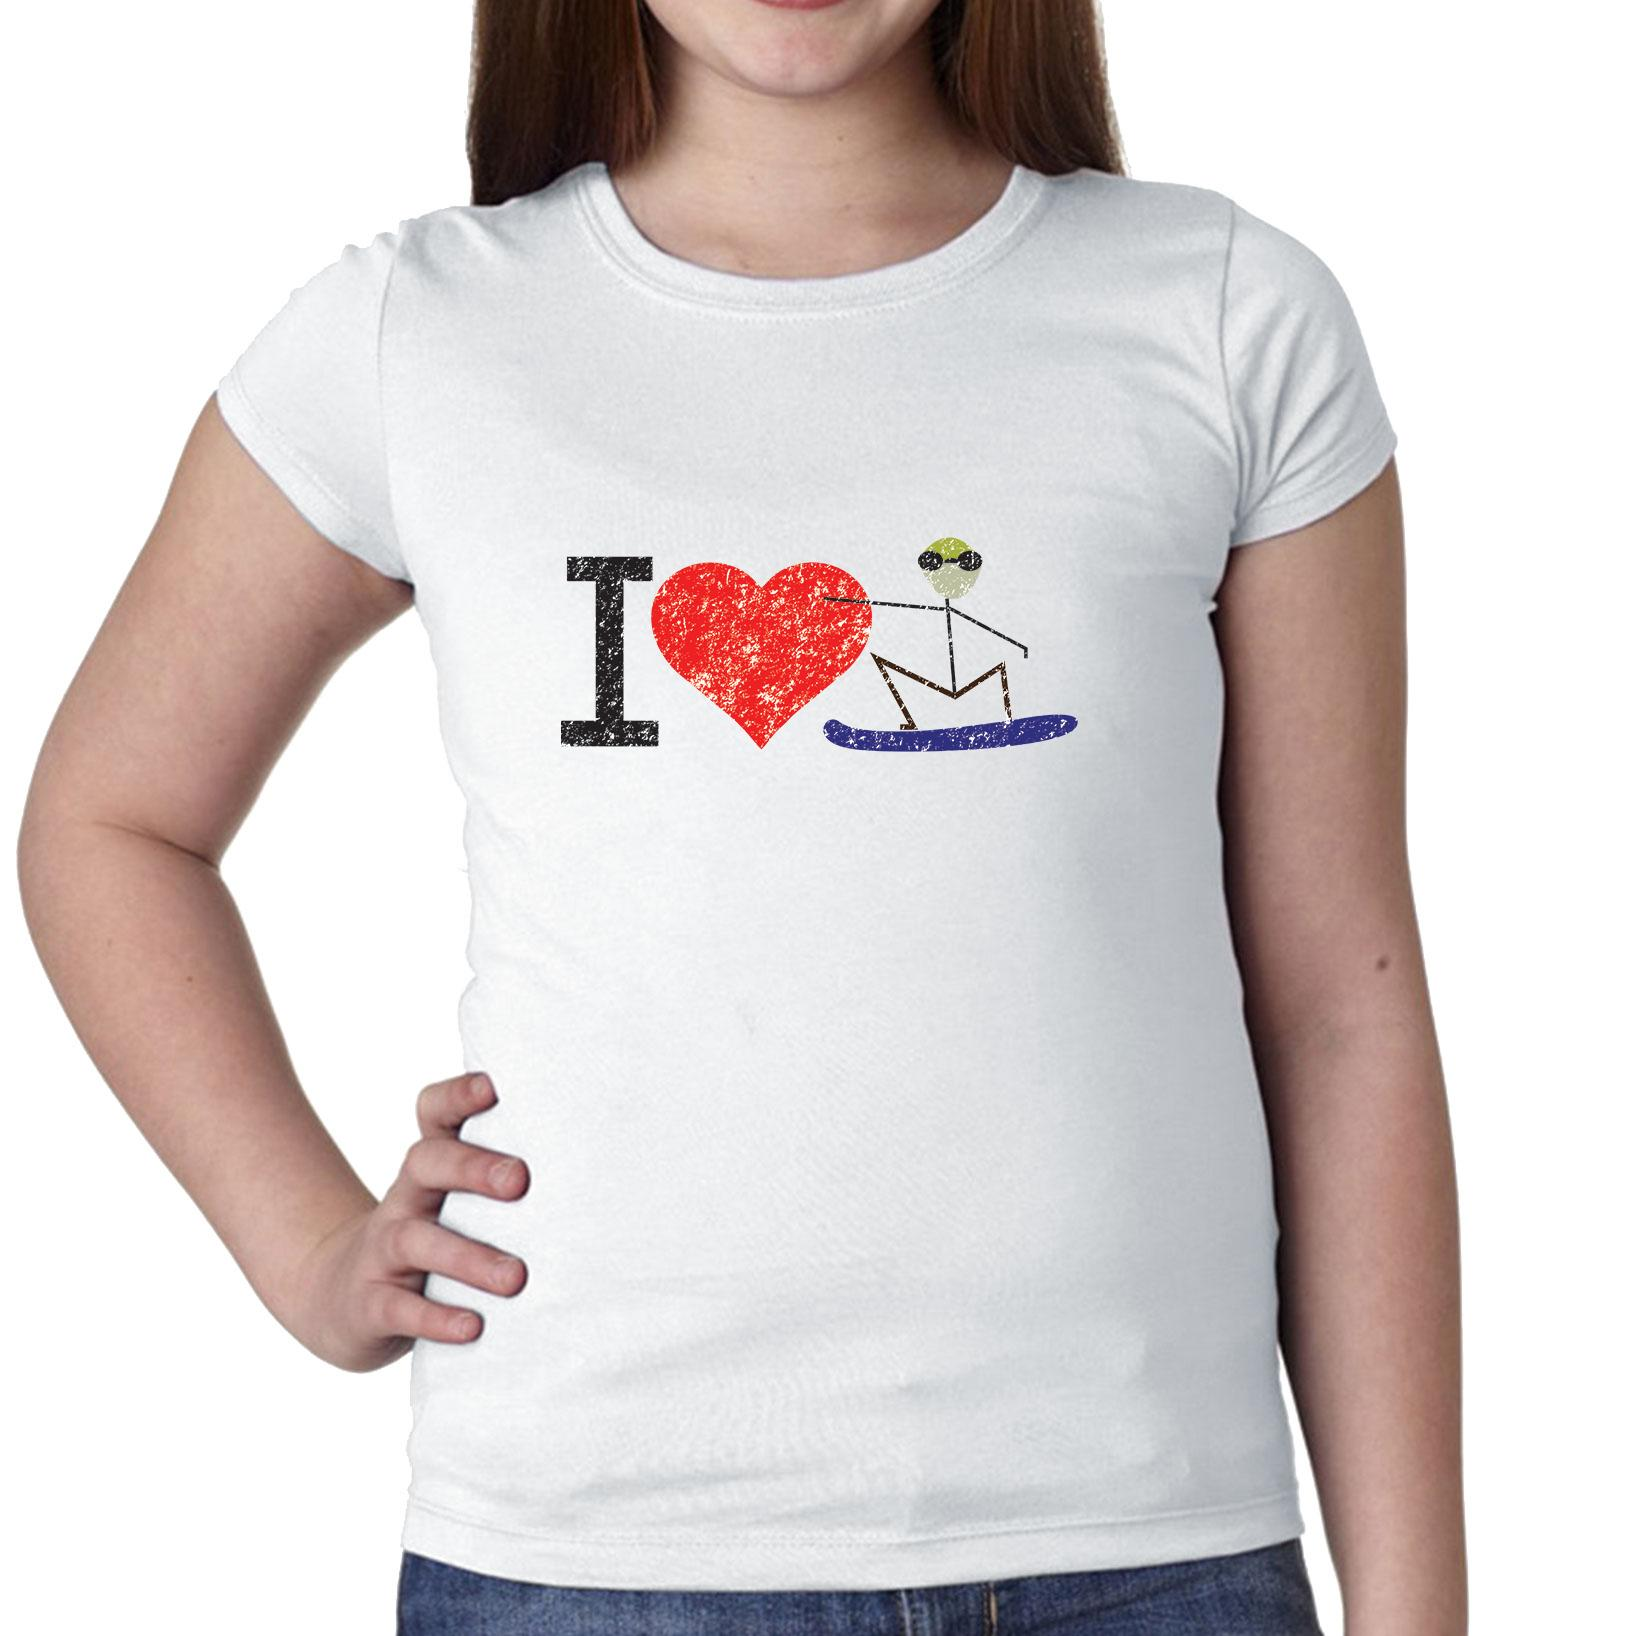 I Love Snowboarding Red Heart Cartoon Girl's Cotton Youth T-Shirt by Hollywood Thread